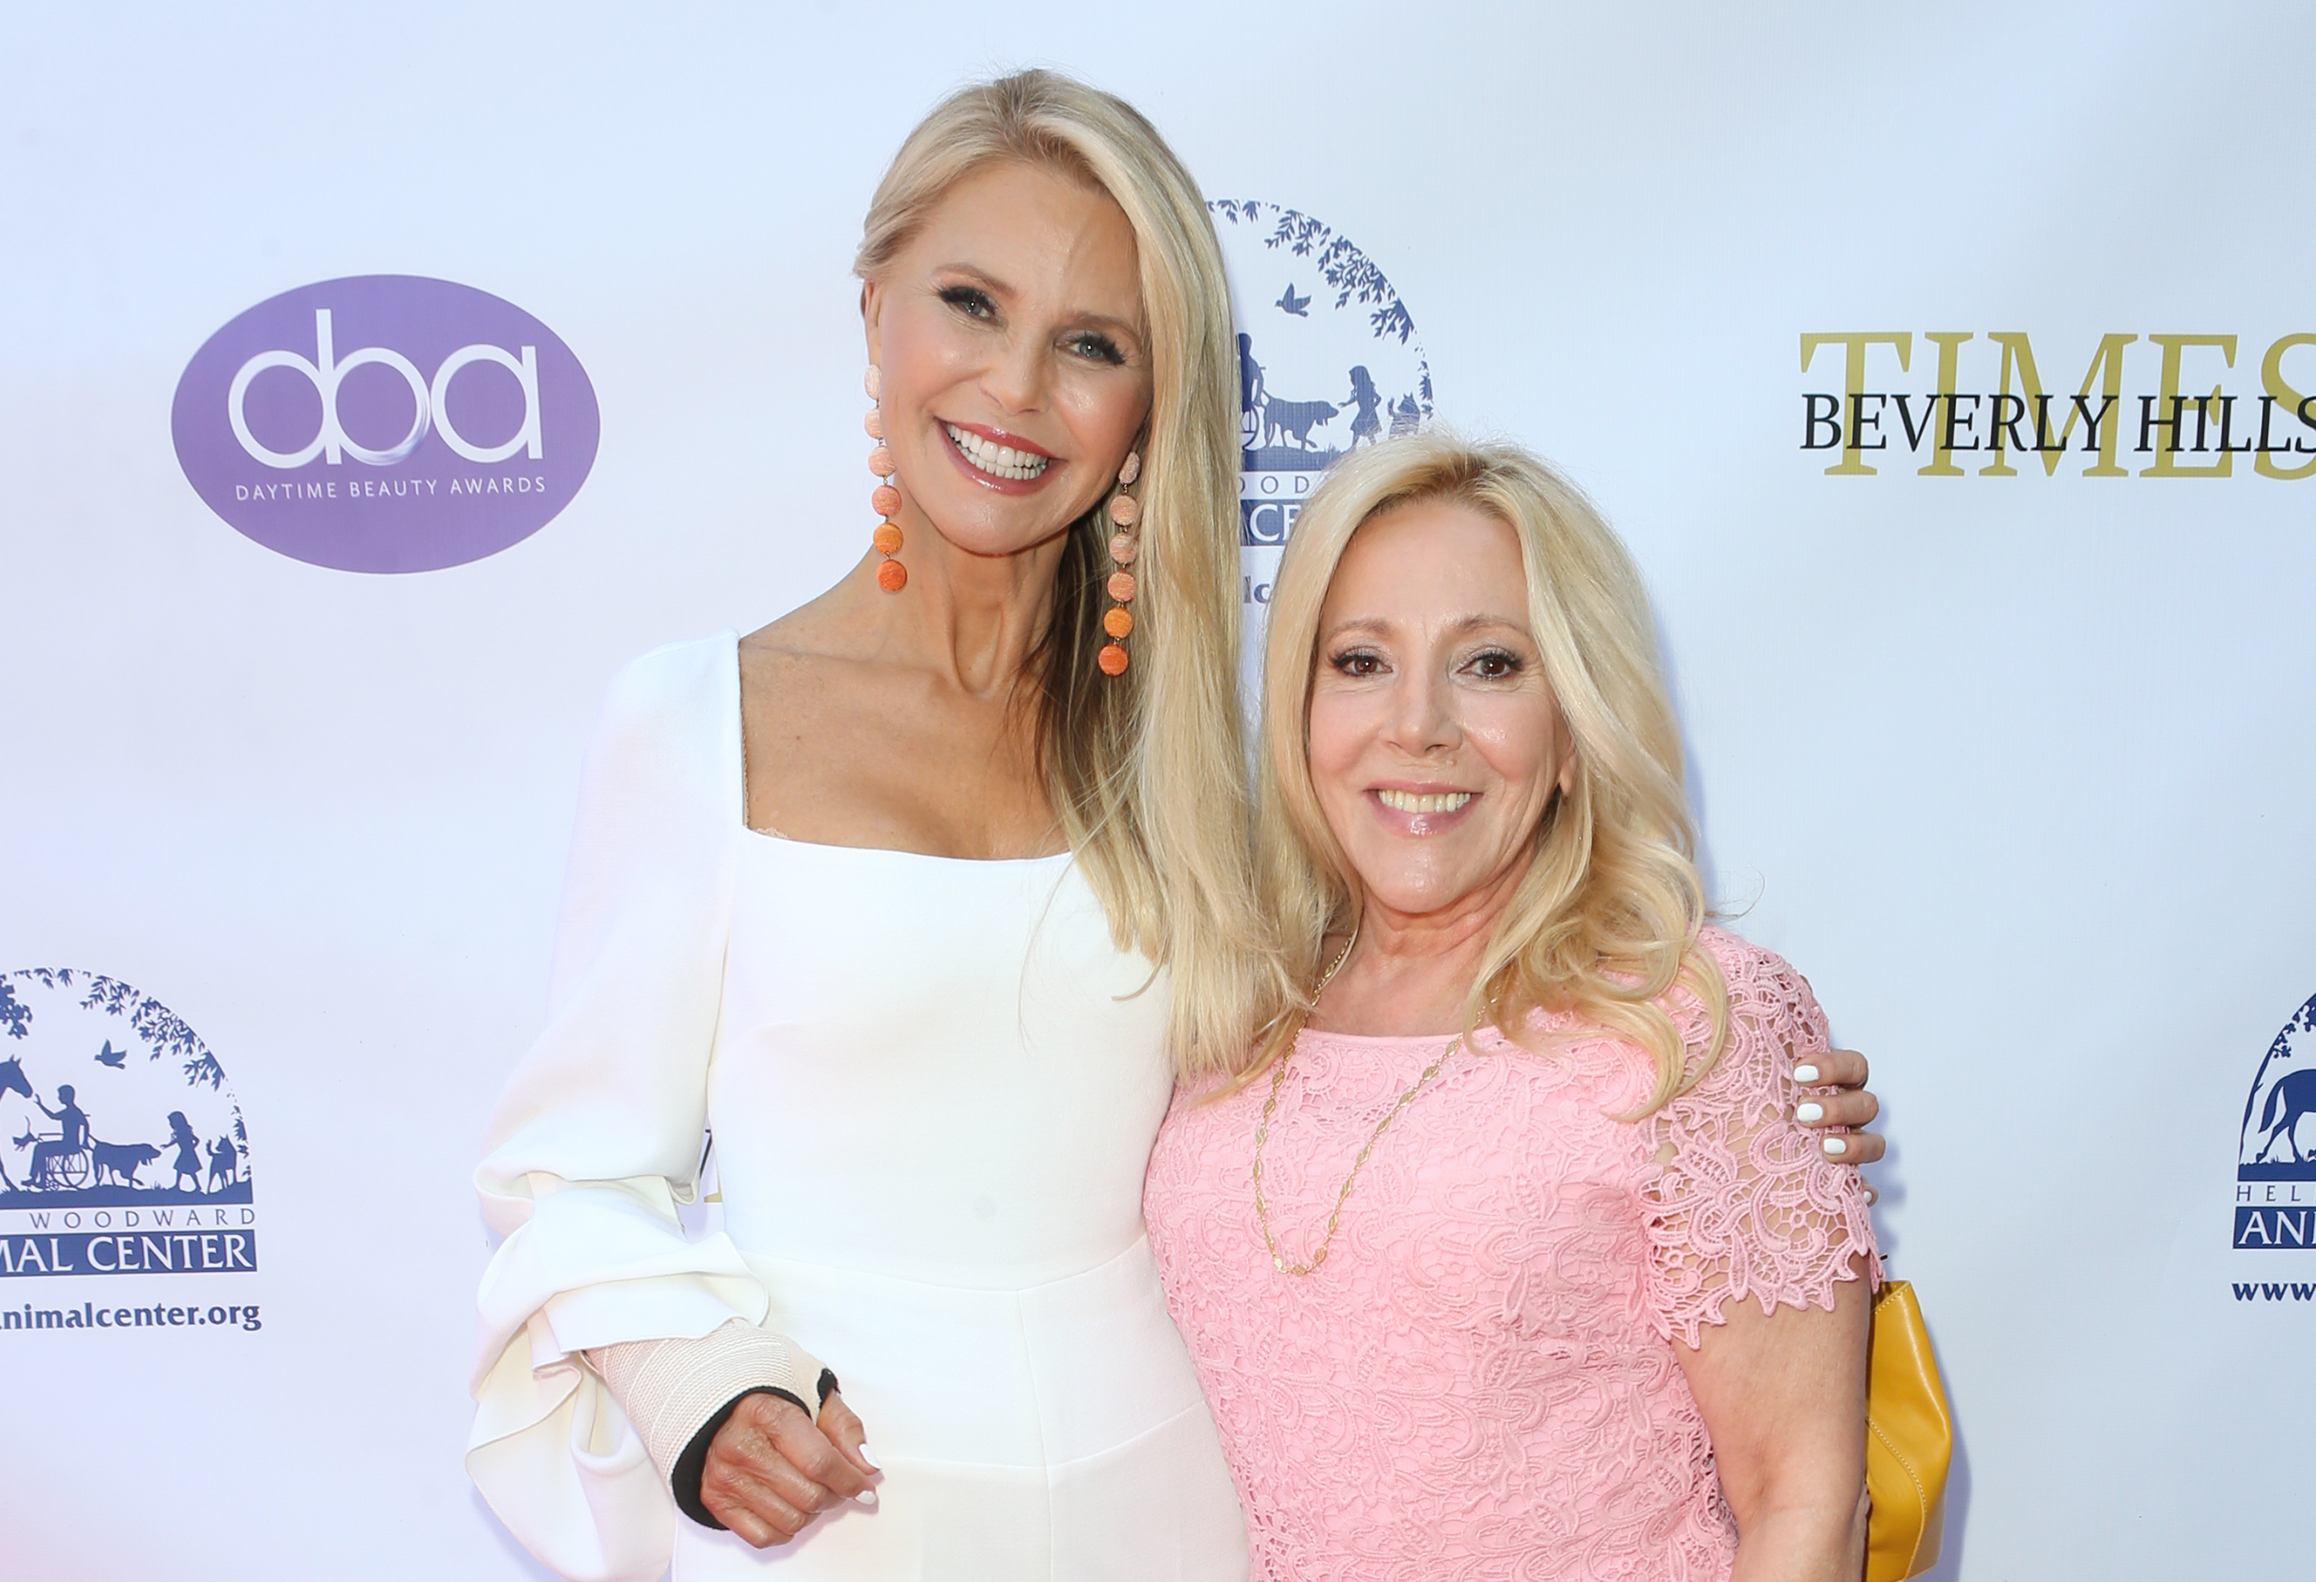 Christie Brinkley, Michele Elyzabeth, Daytime Beauty Awards